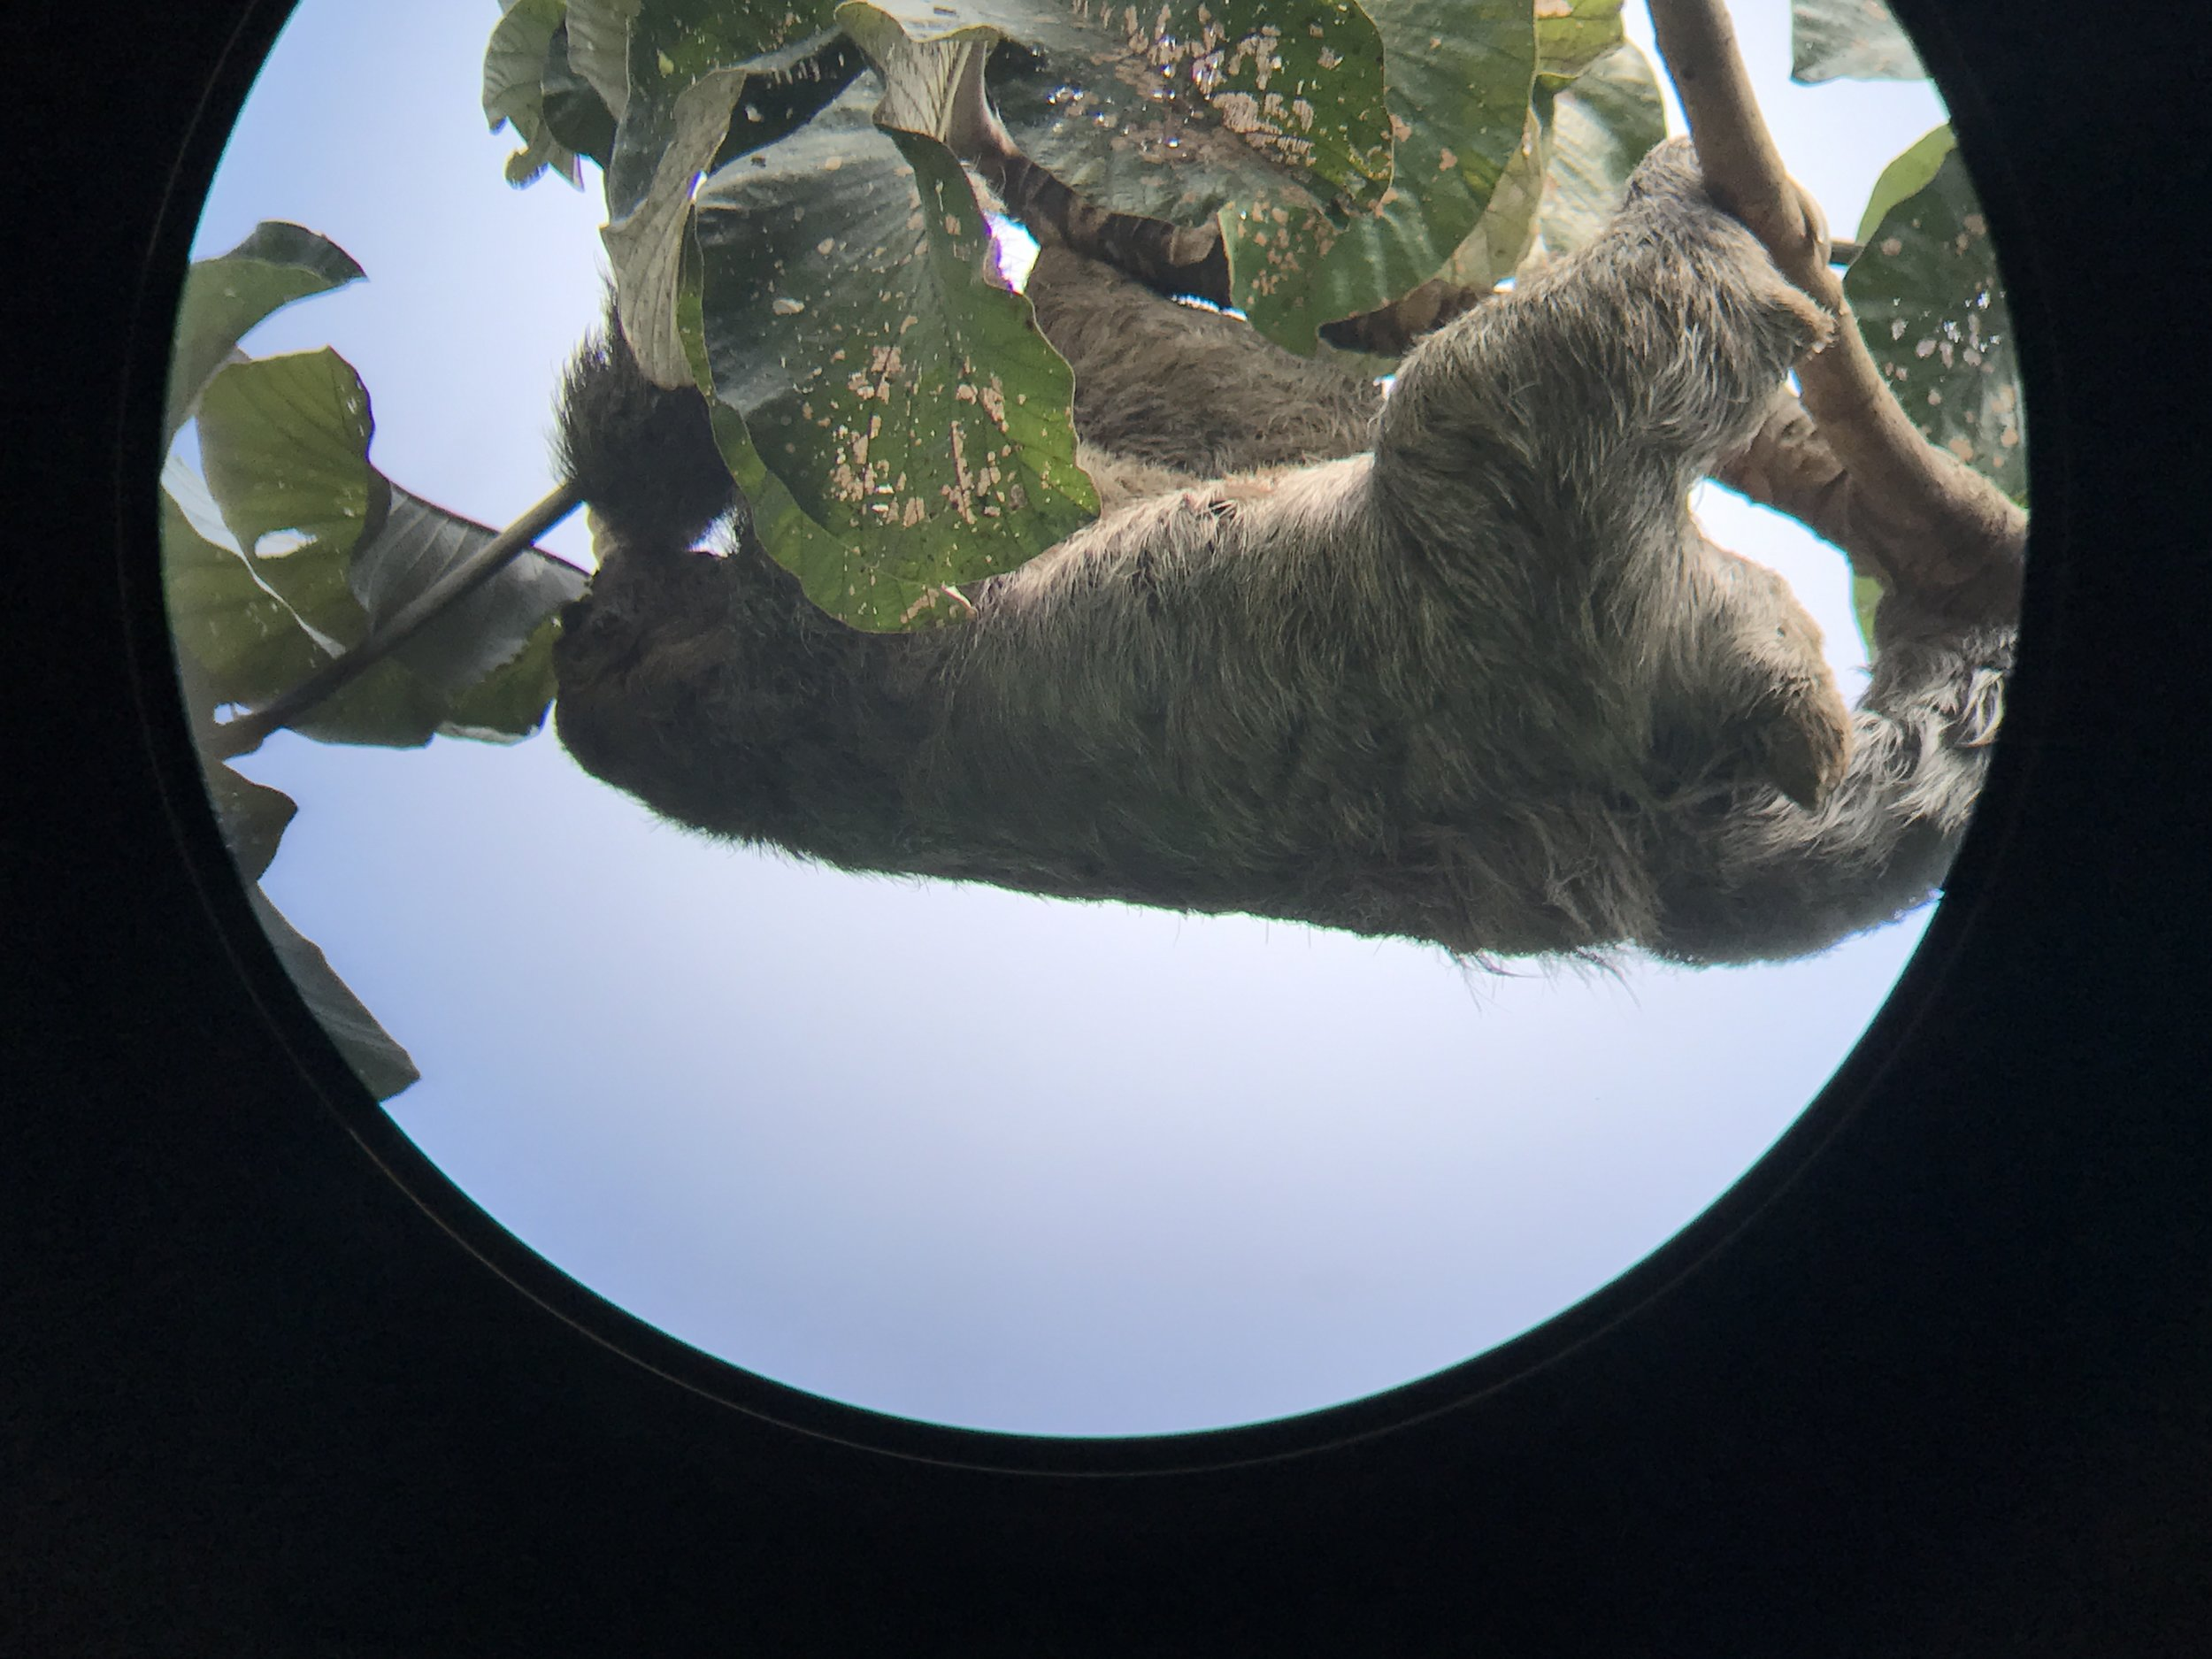 Cute sloth in Manuel Antonio Park